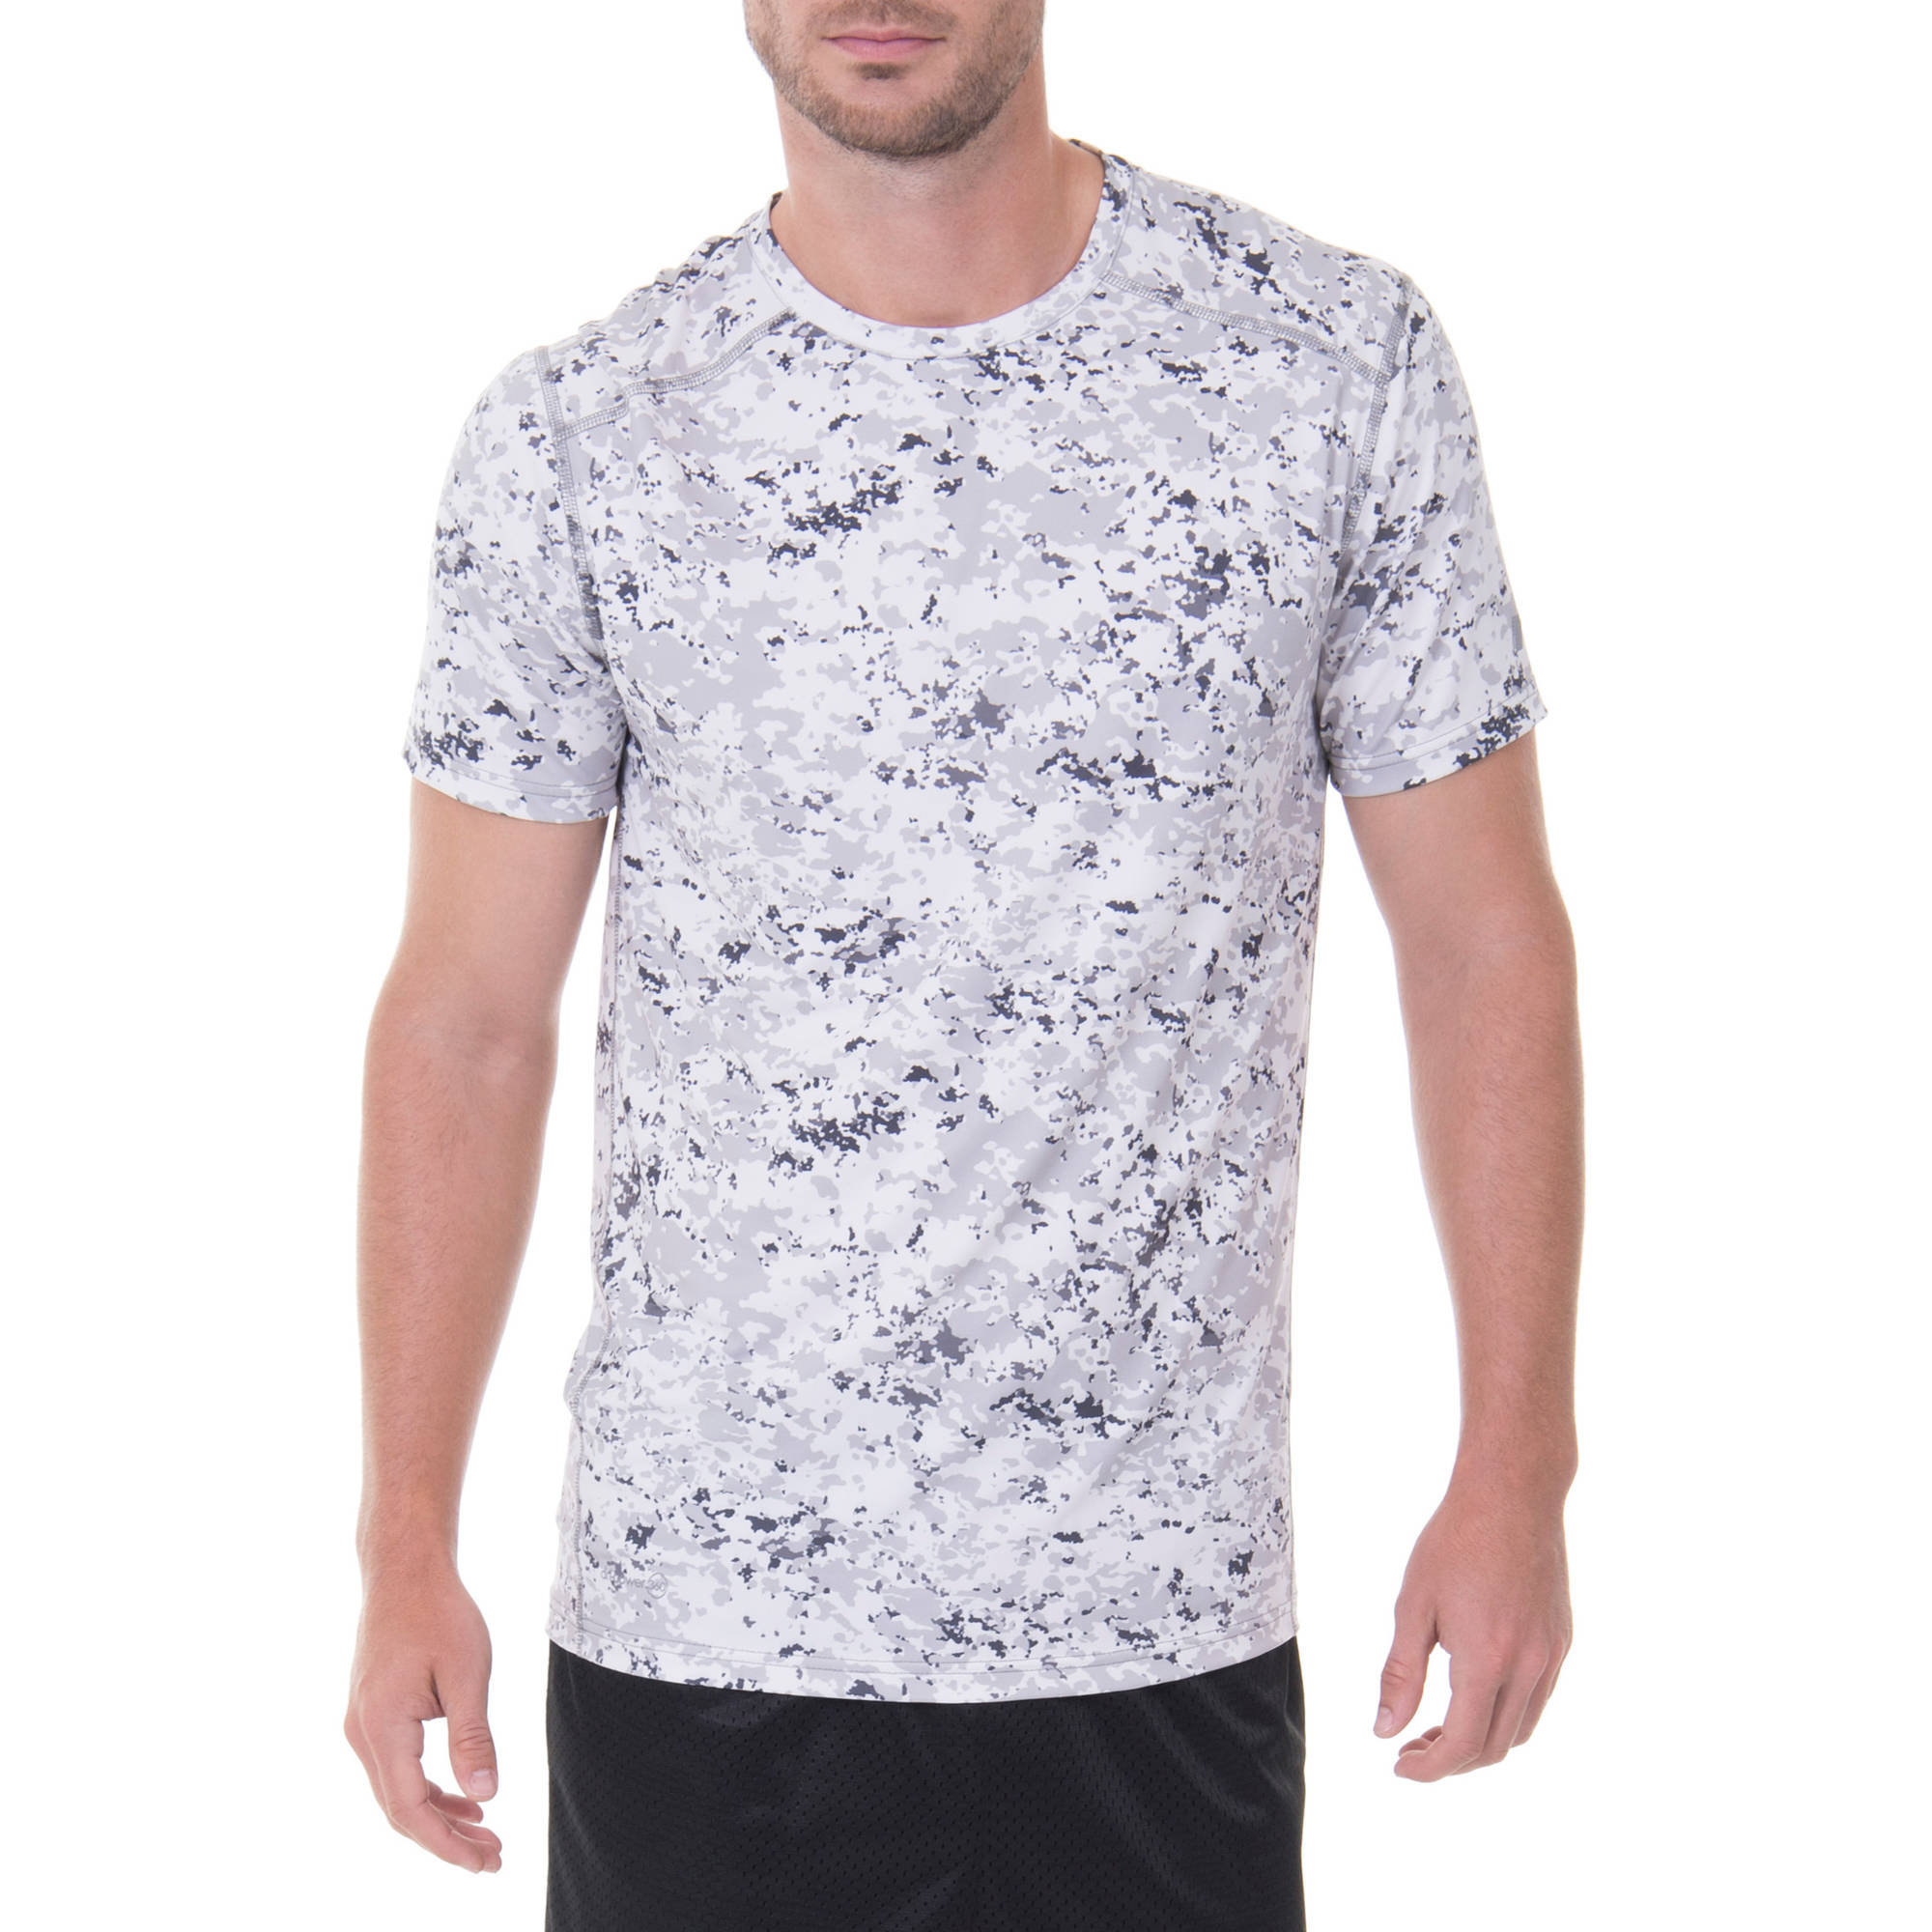 Russell Men's Performance Mineral Wash Printed Crew Tee